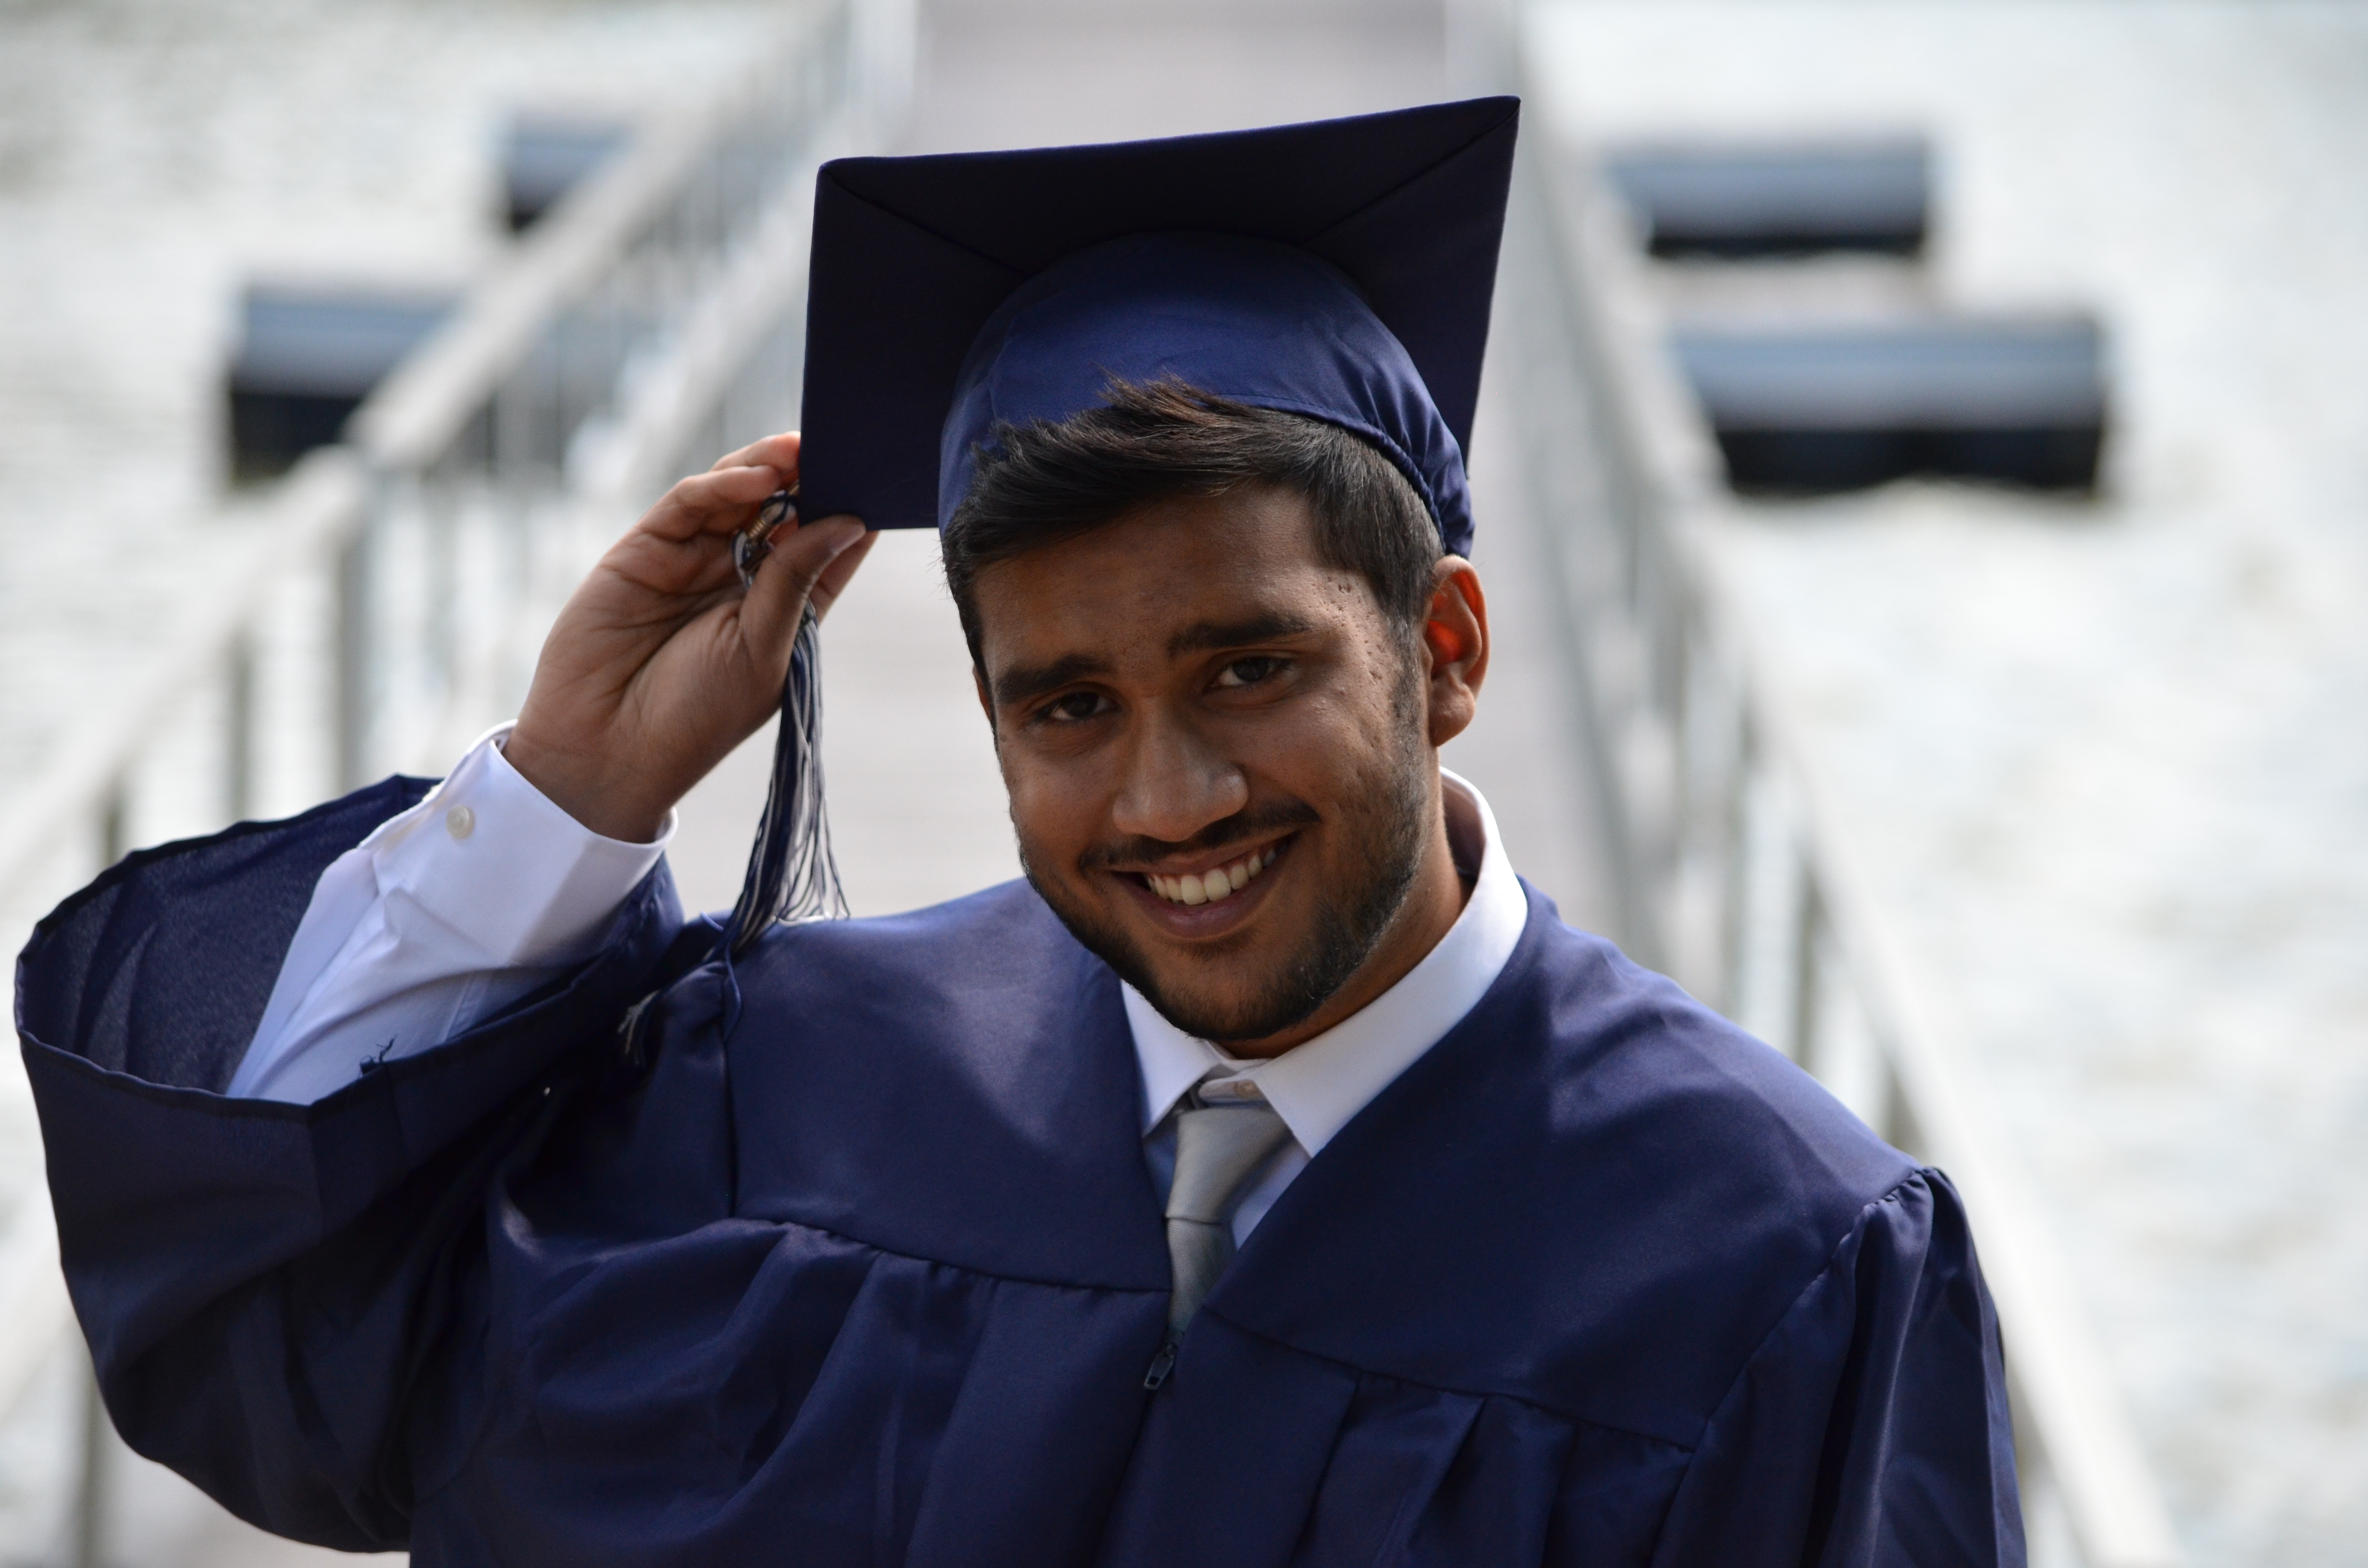 College student in graduation robes